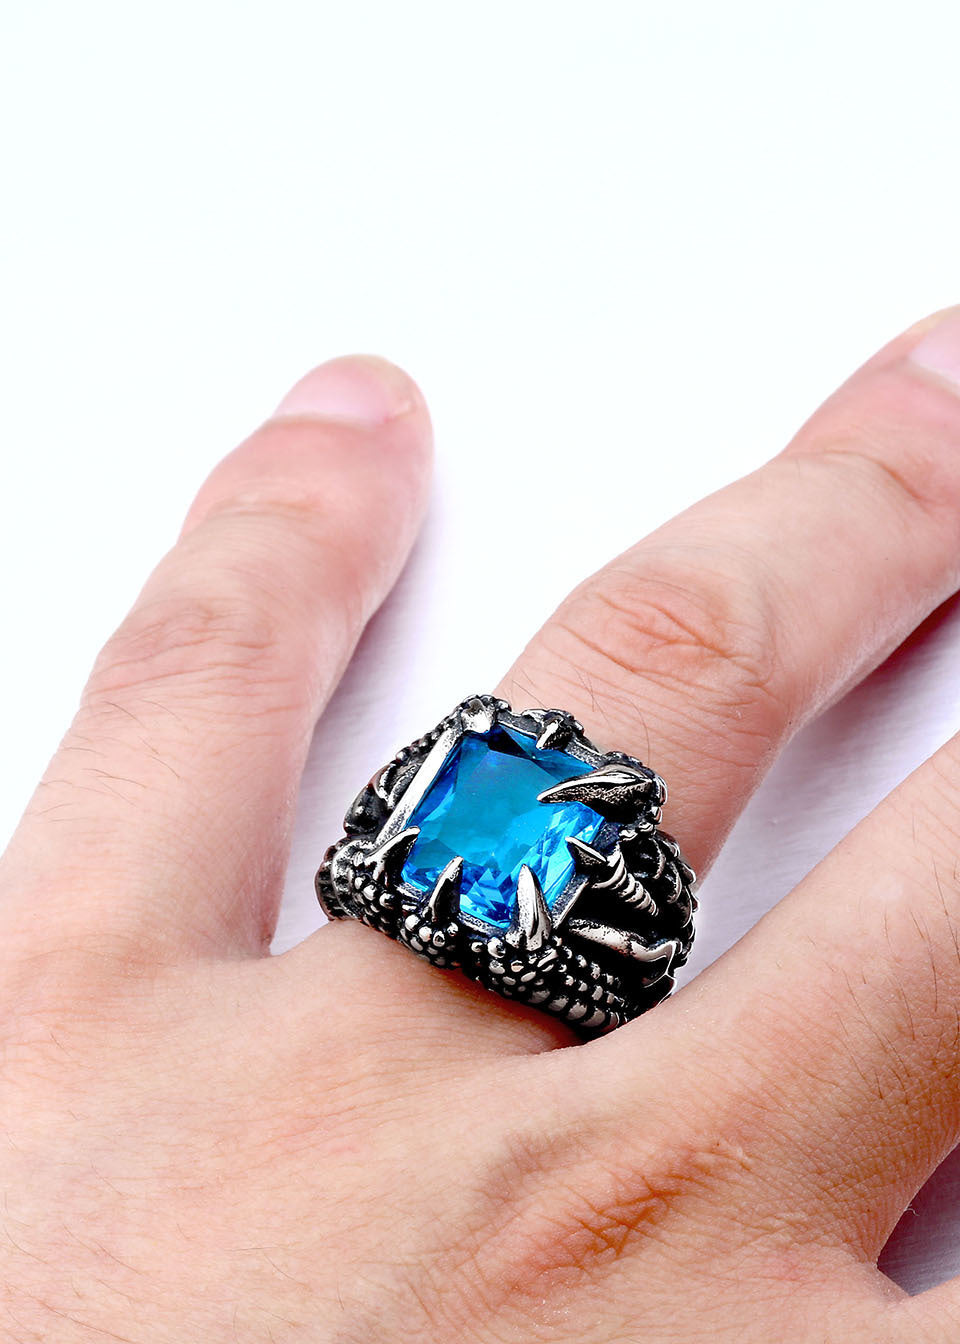 Dragon Claw Ring With Red/Blue/Black Stone - Superhero Gear